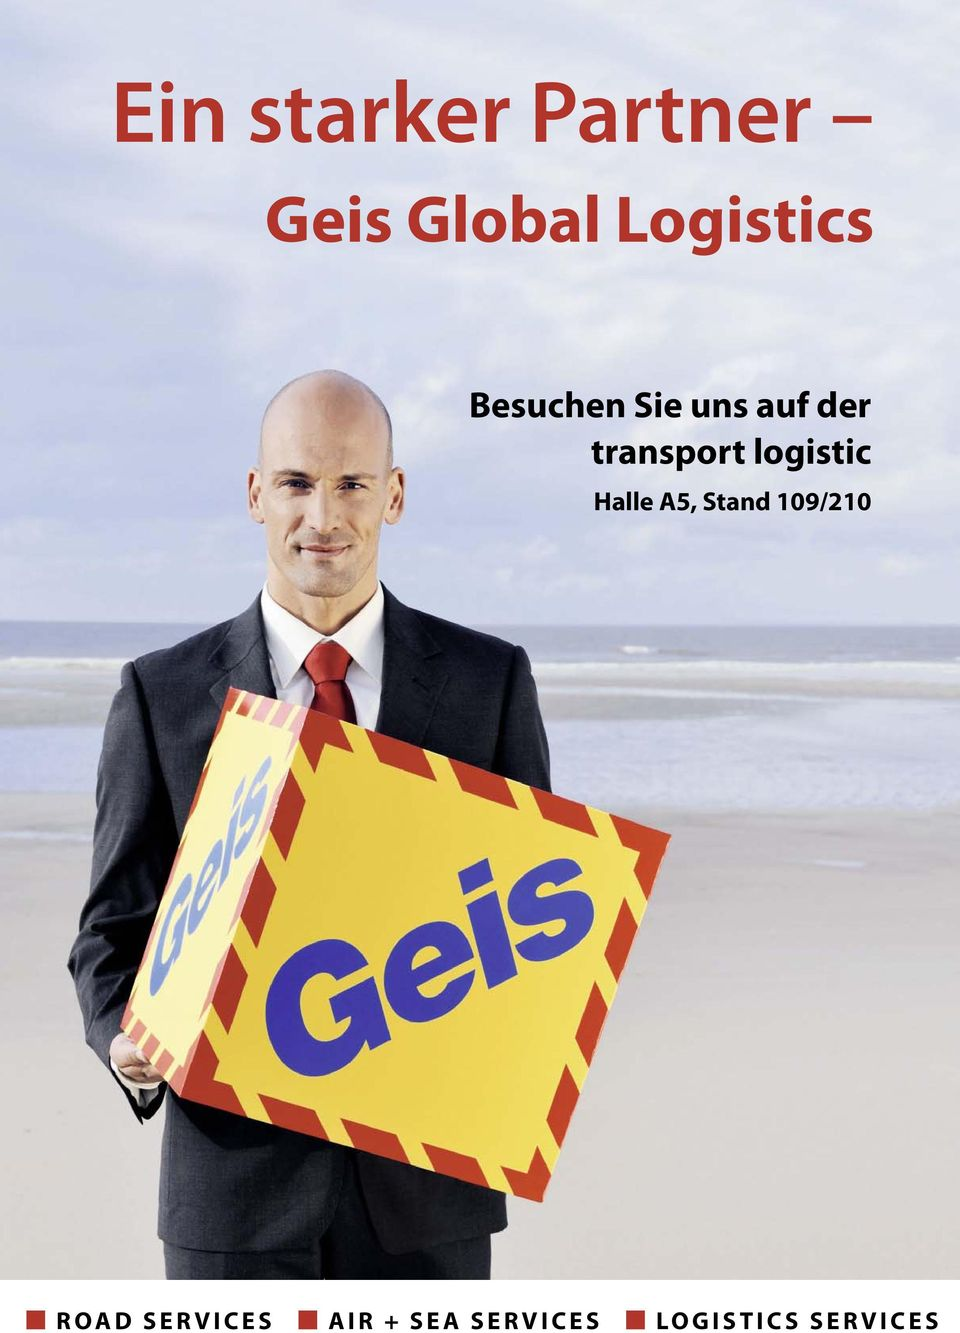 transport logistic Halle A5, Stand